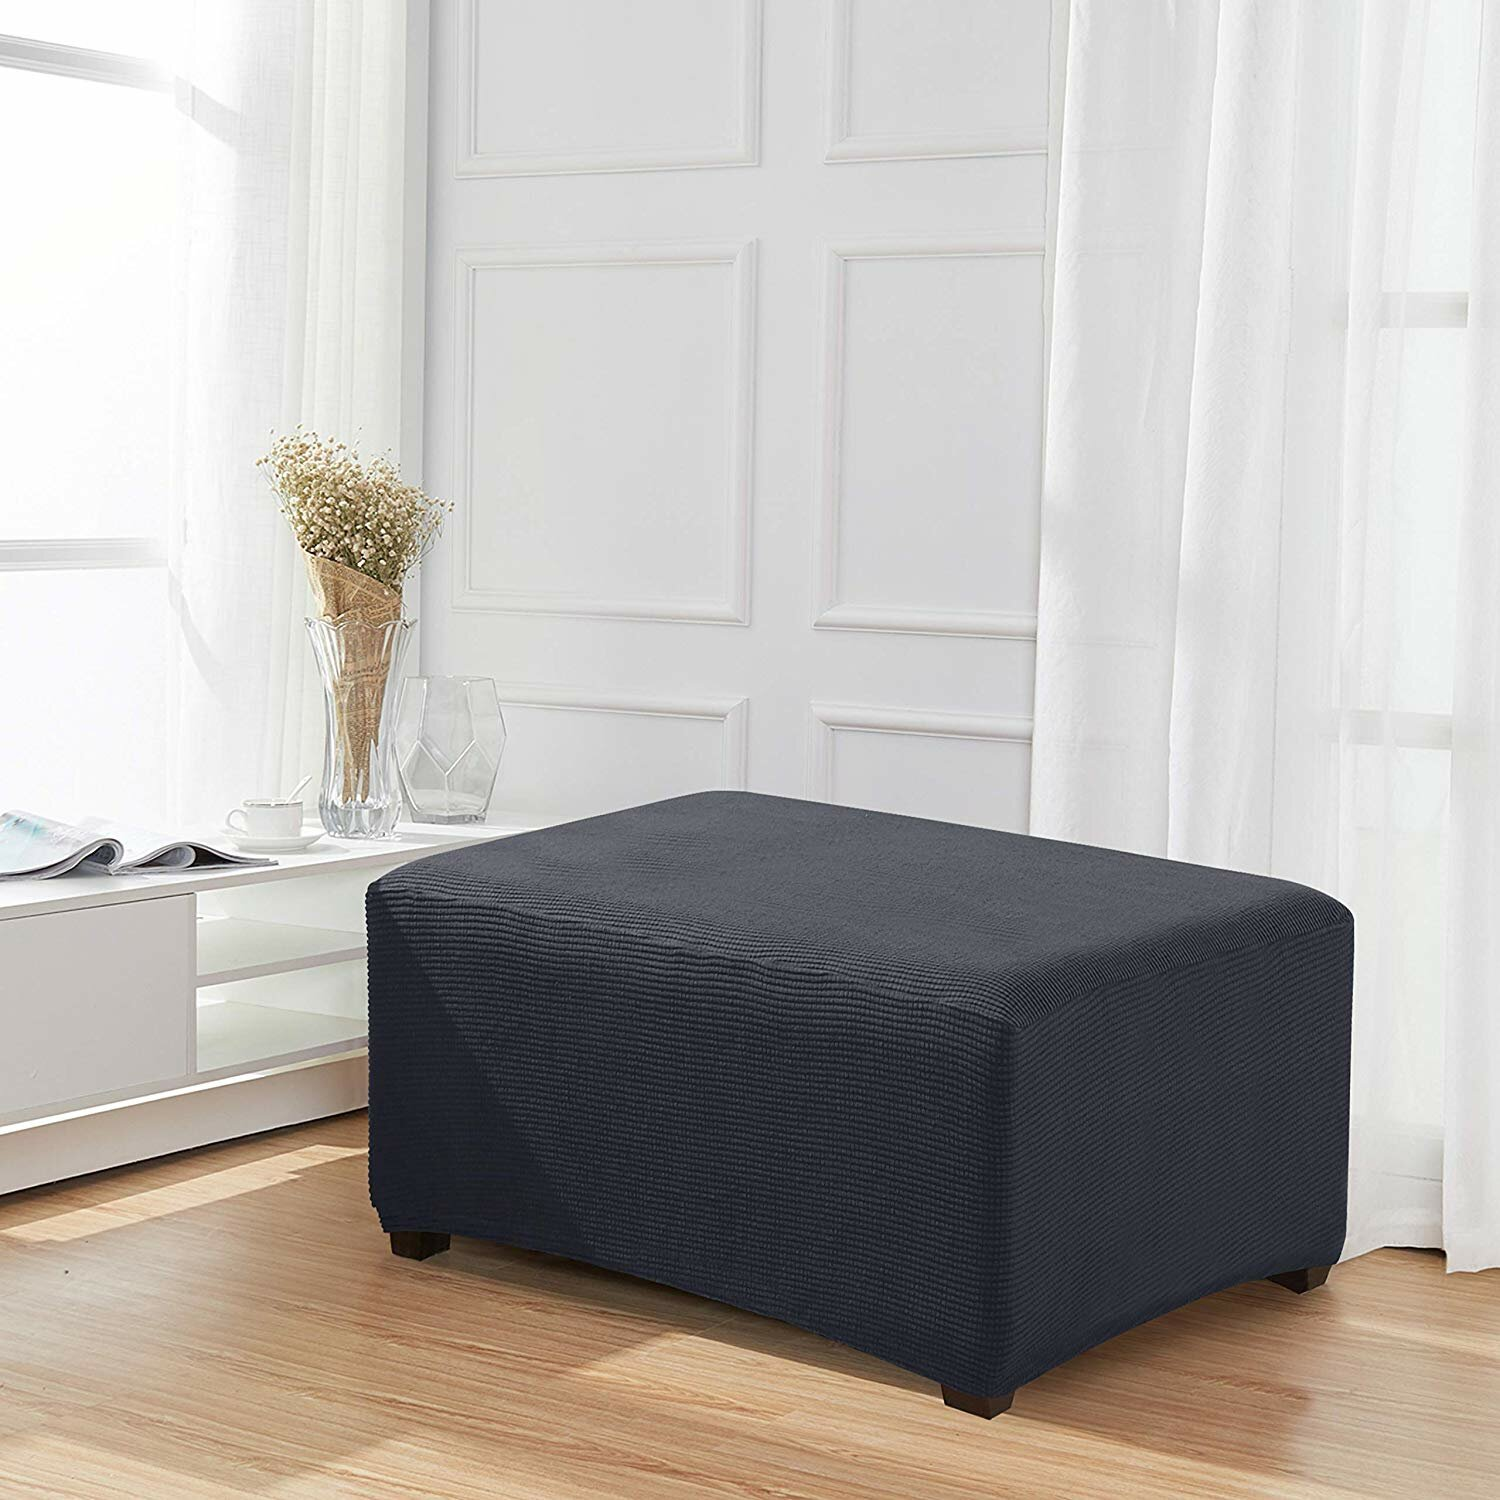 Velvet Oversize Ottoman Cover Stretch Slipcovers Footstool Furniture Protector